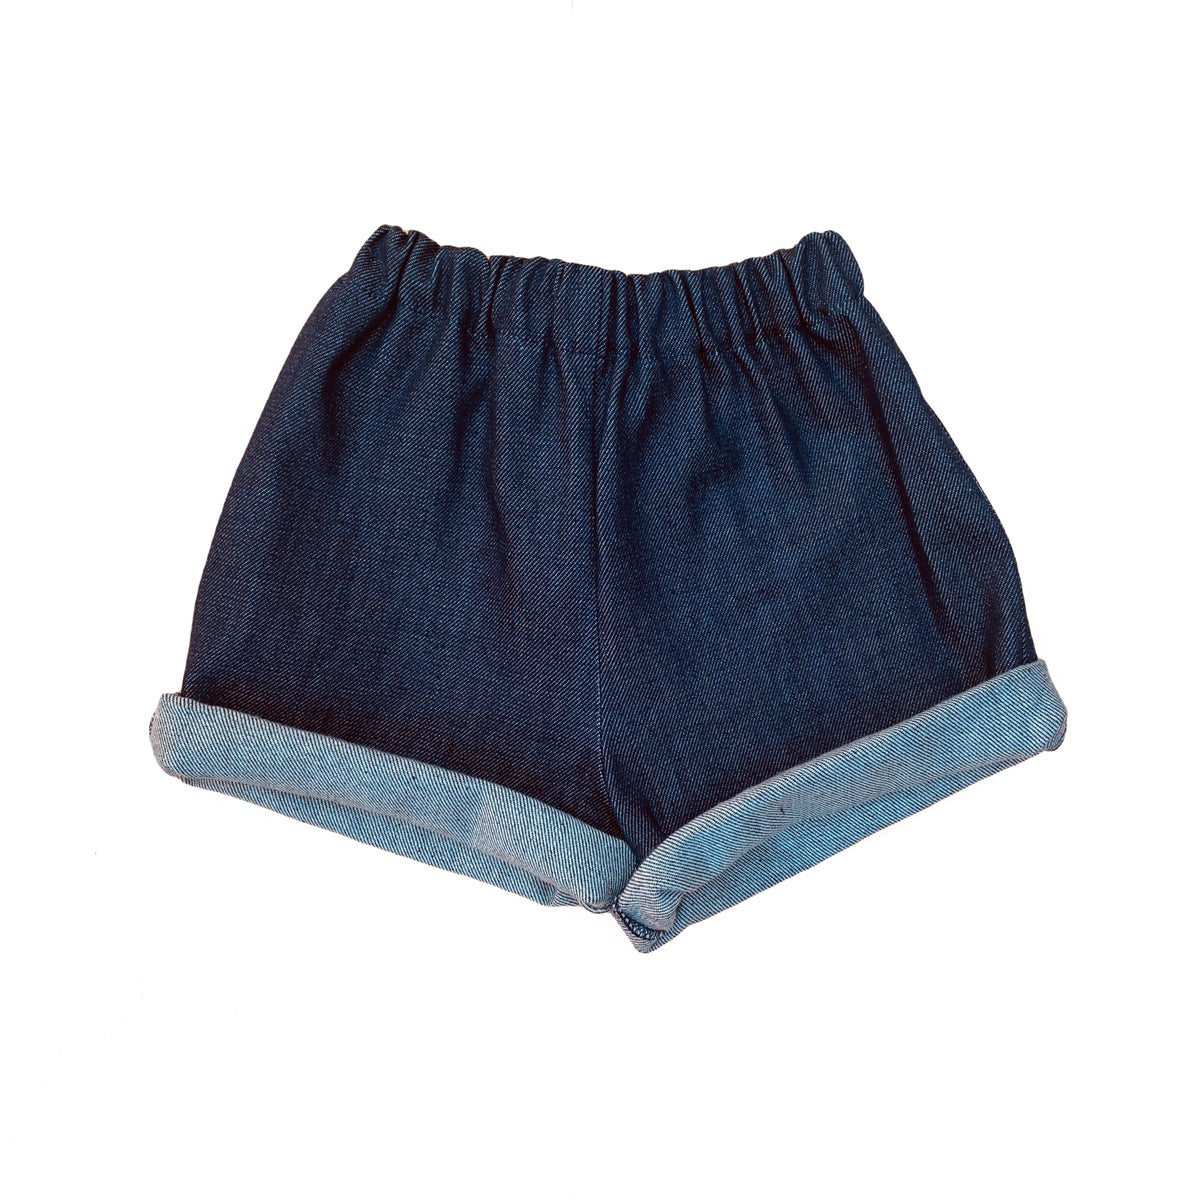 Image of Pippins denim shorts Indigo (was £33 now £25)